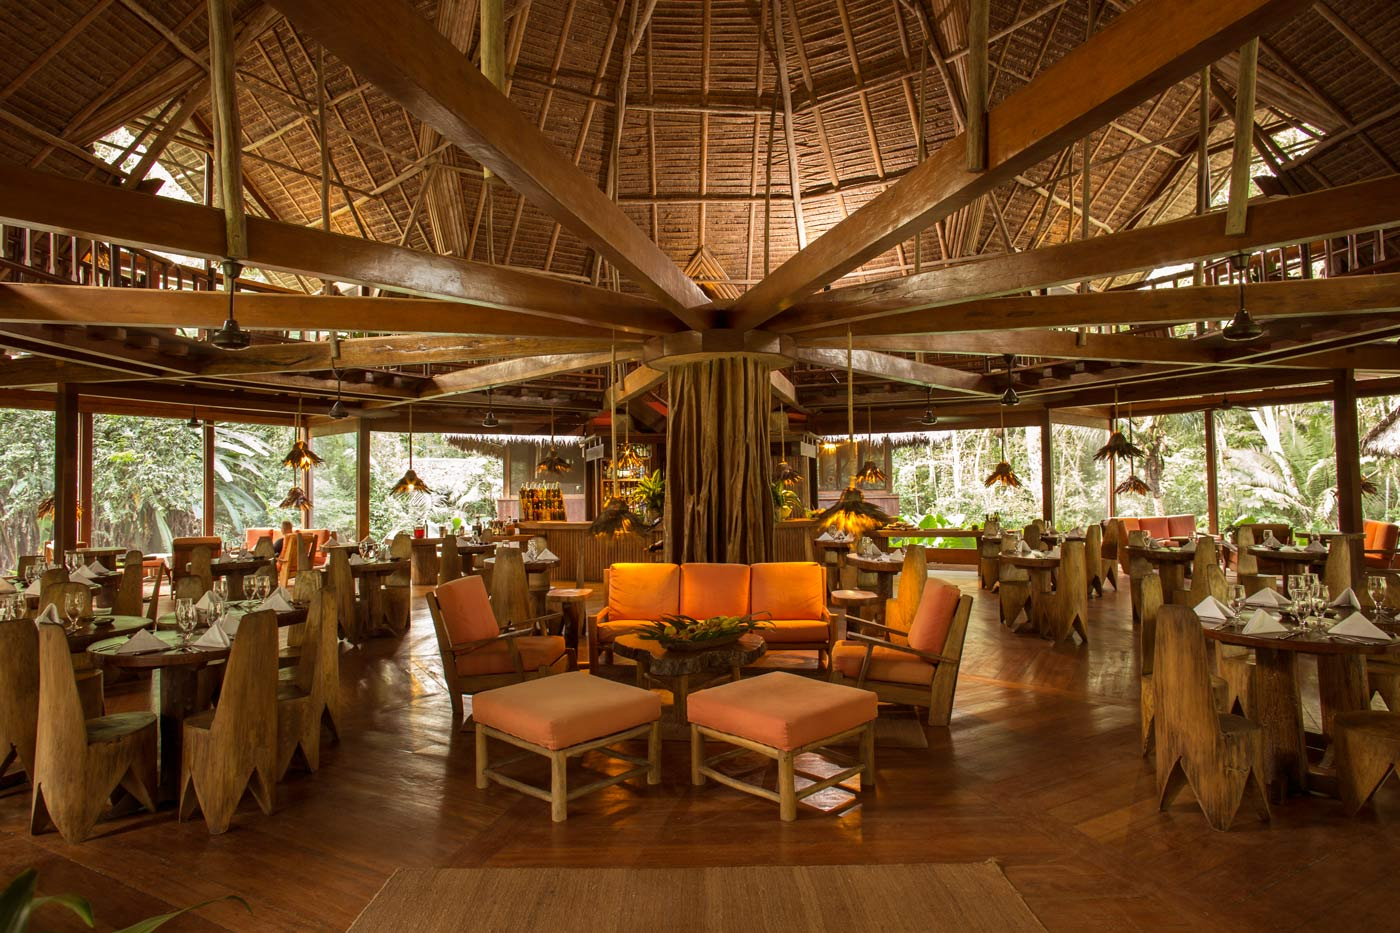 Dining room bar reserva amazonica for Dining room bar